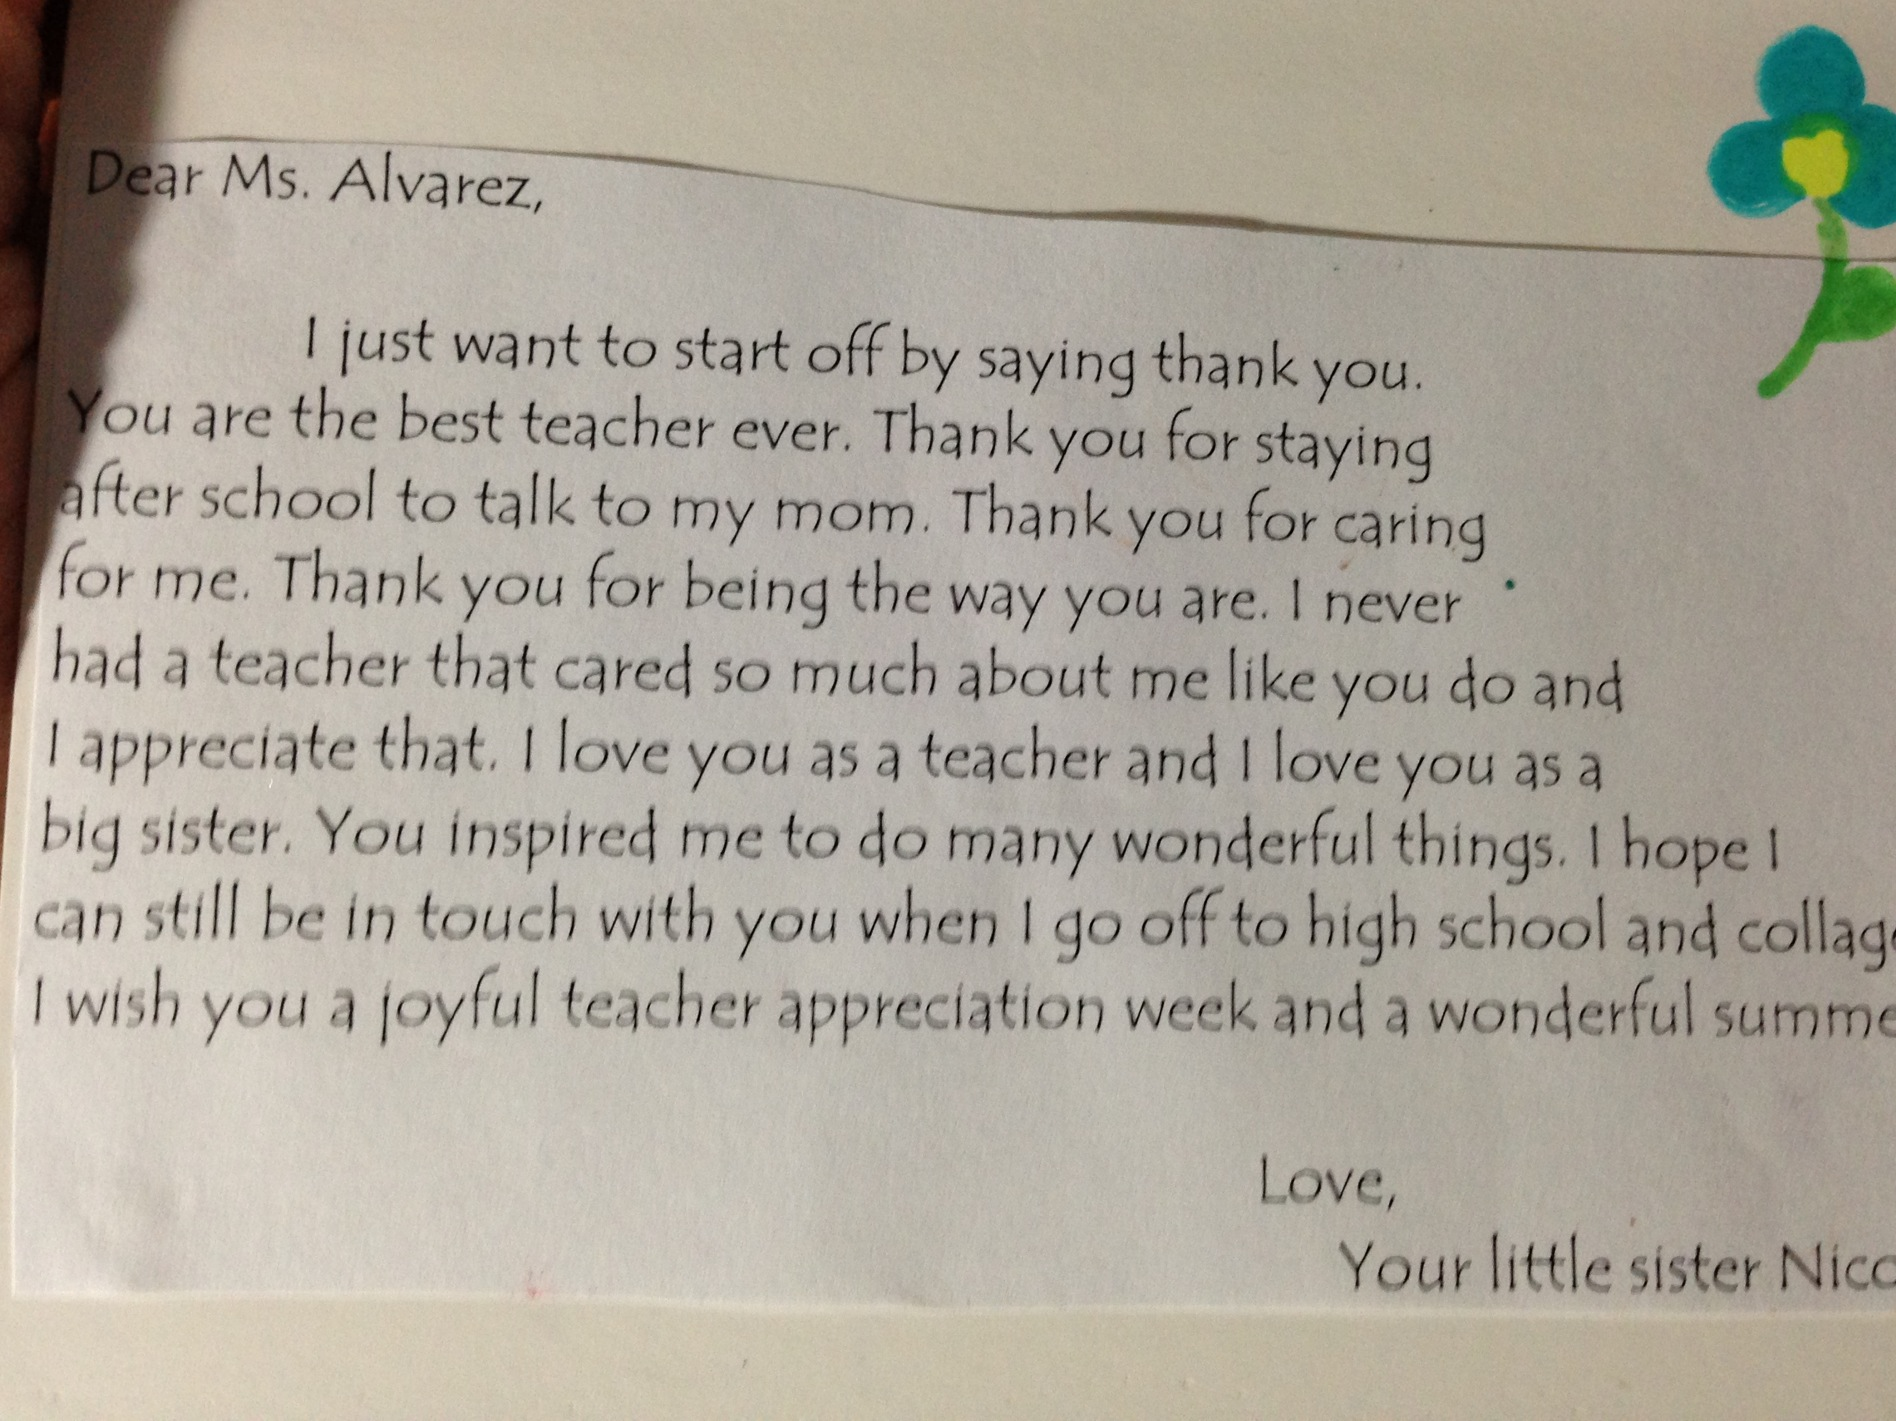 letter to my teacher Find and save ideas about letter to students on pinterest | see more ideas about letter to teacher, end of a letter and letter for teachers day.